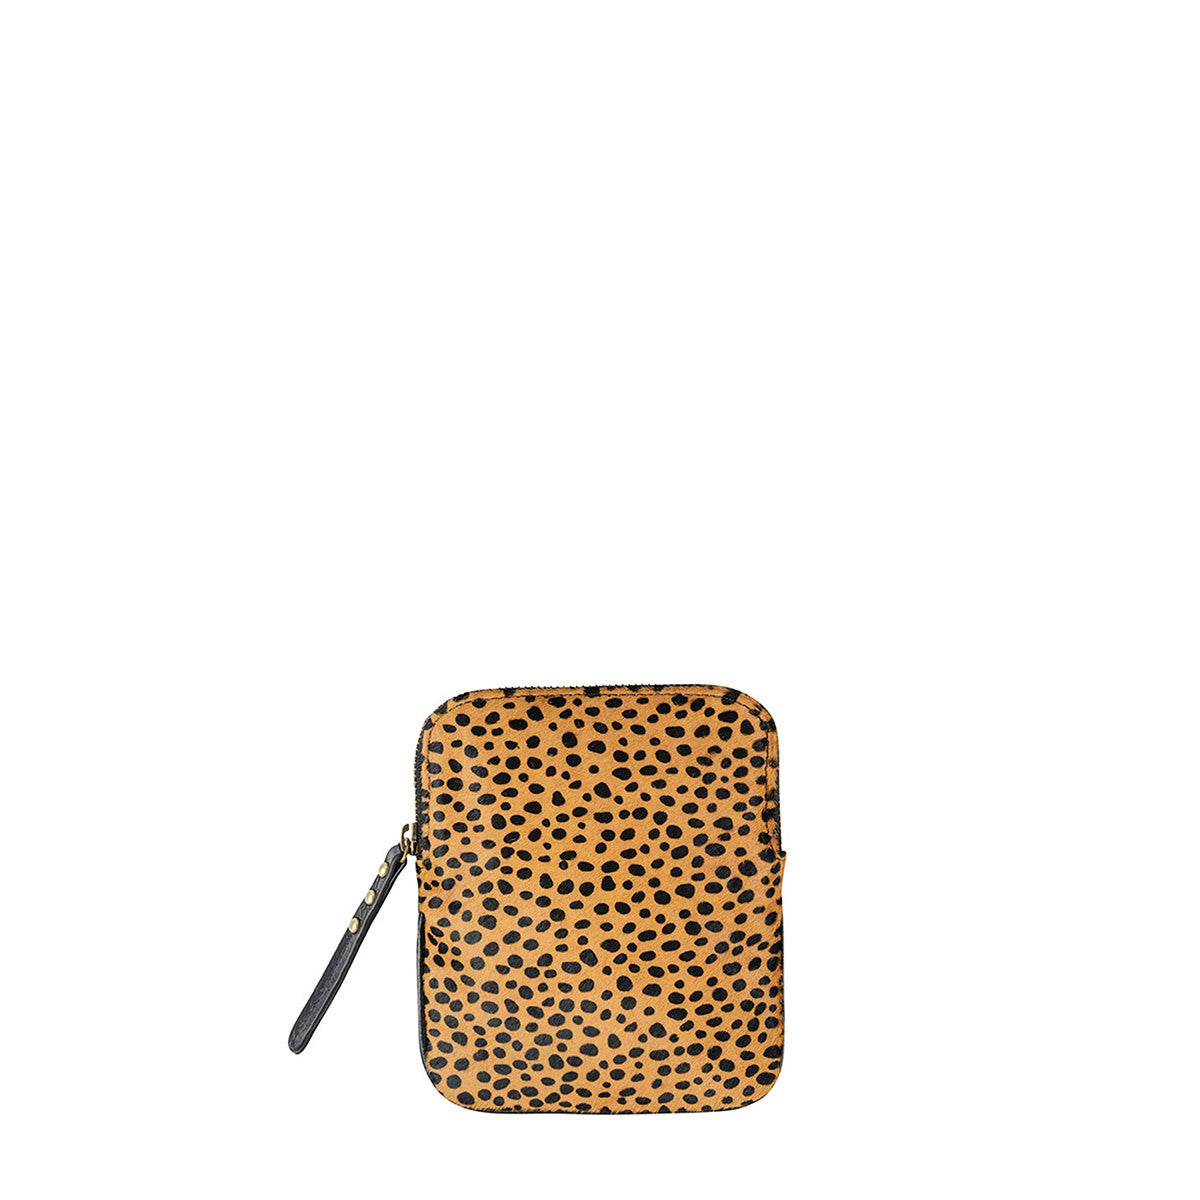 LAW OF THE WILD - Interchangeable Cheetah Pouch (only)